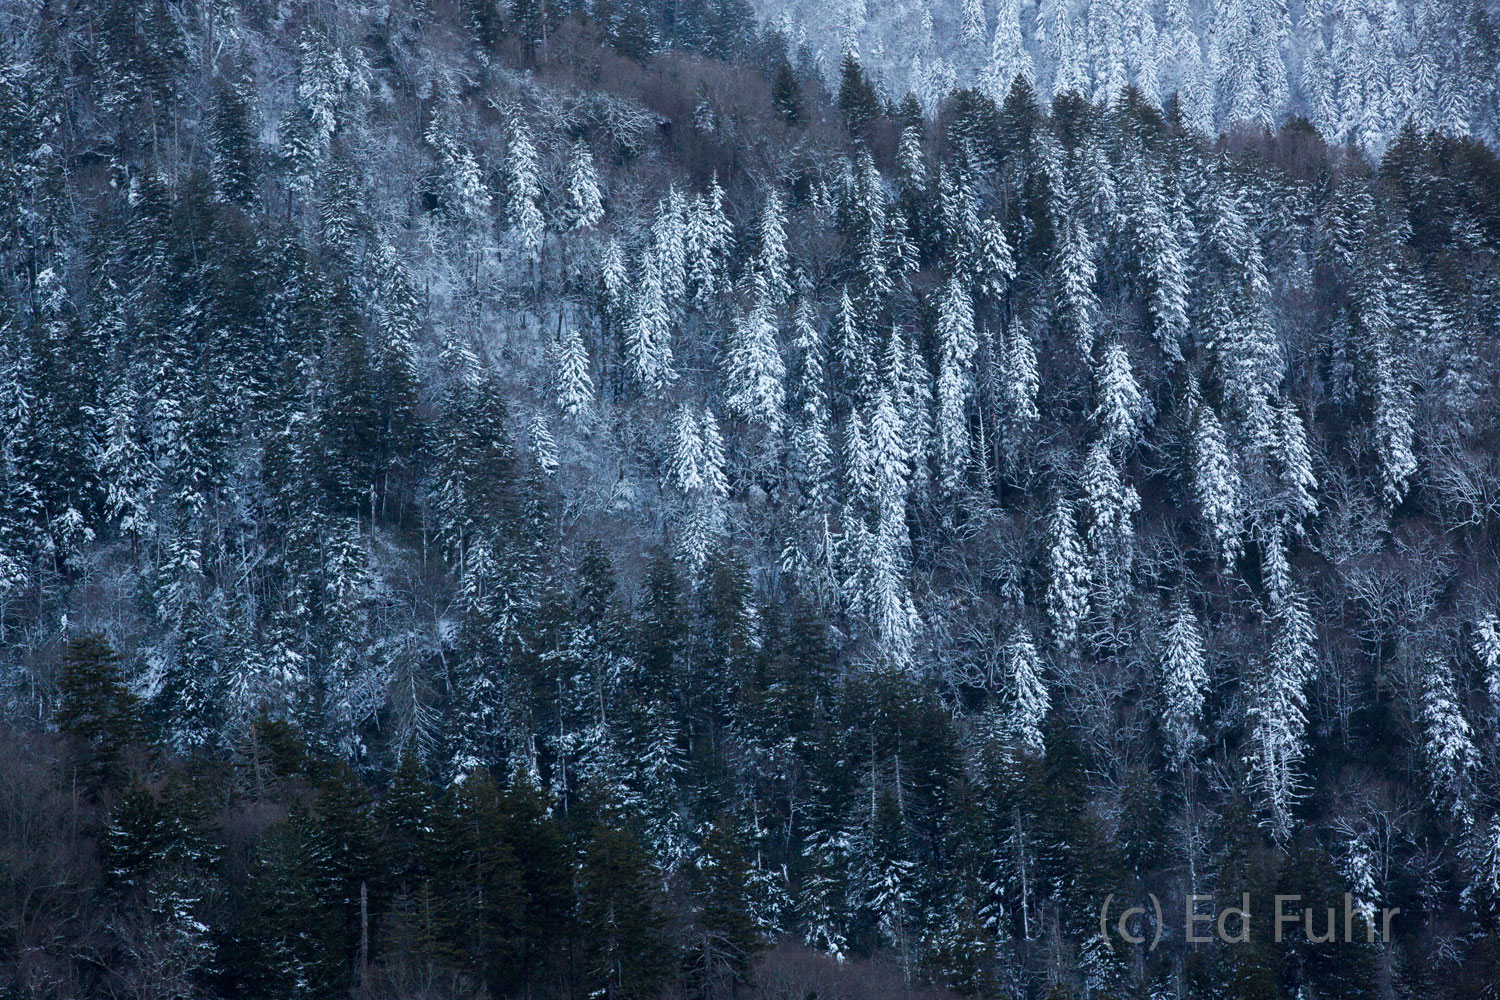 Great smoky mountains, spring, photography, images, snow, photo